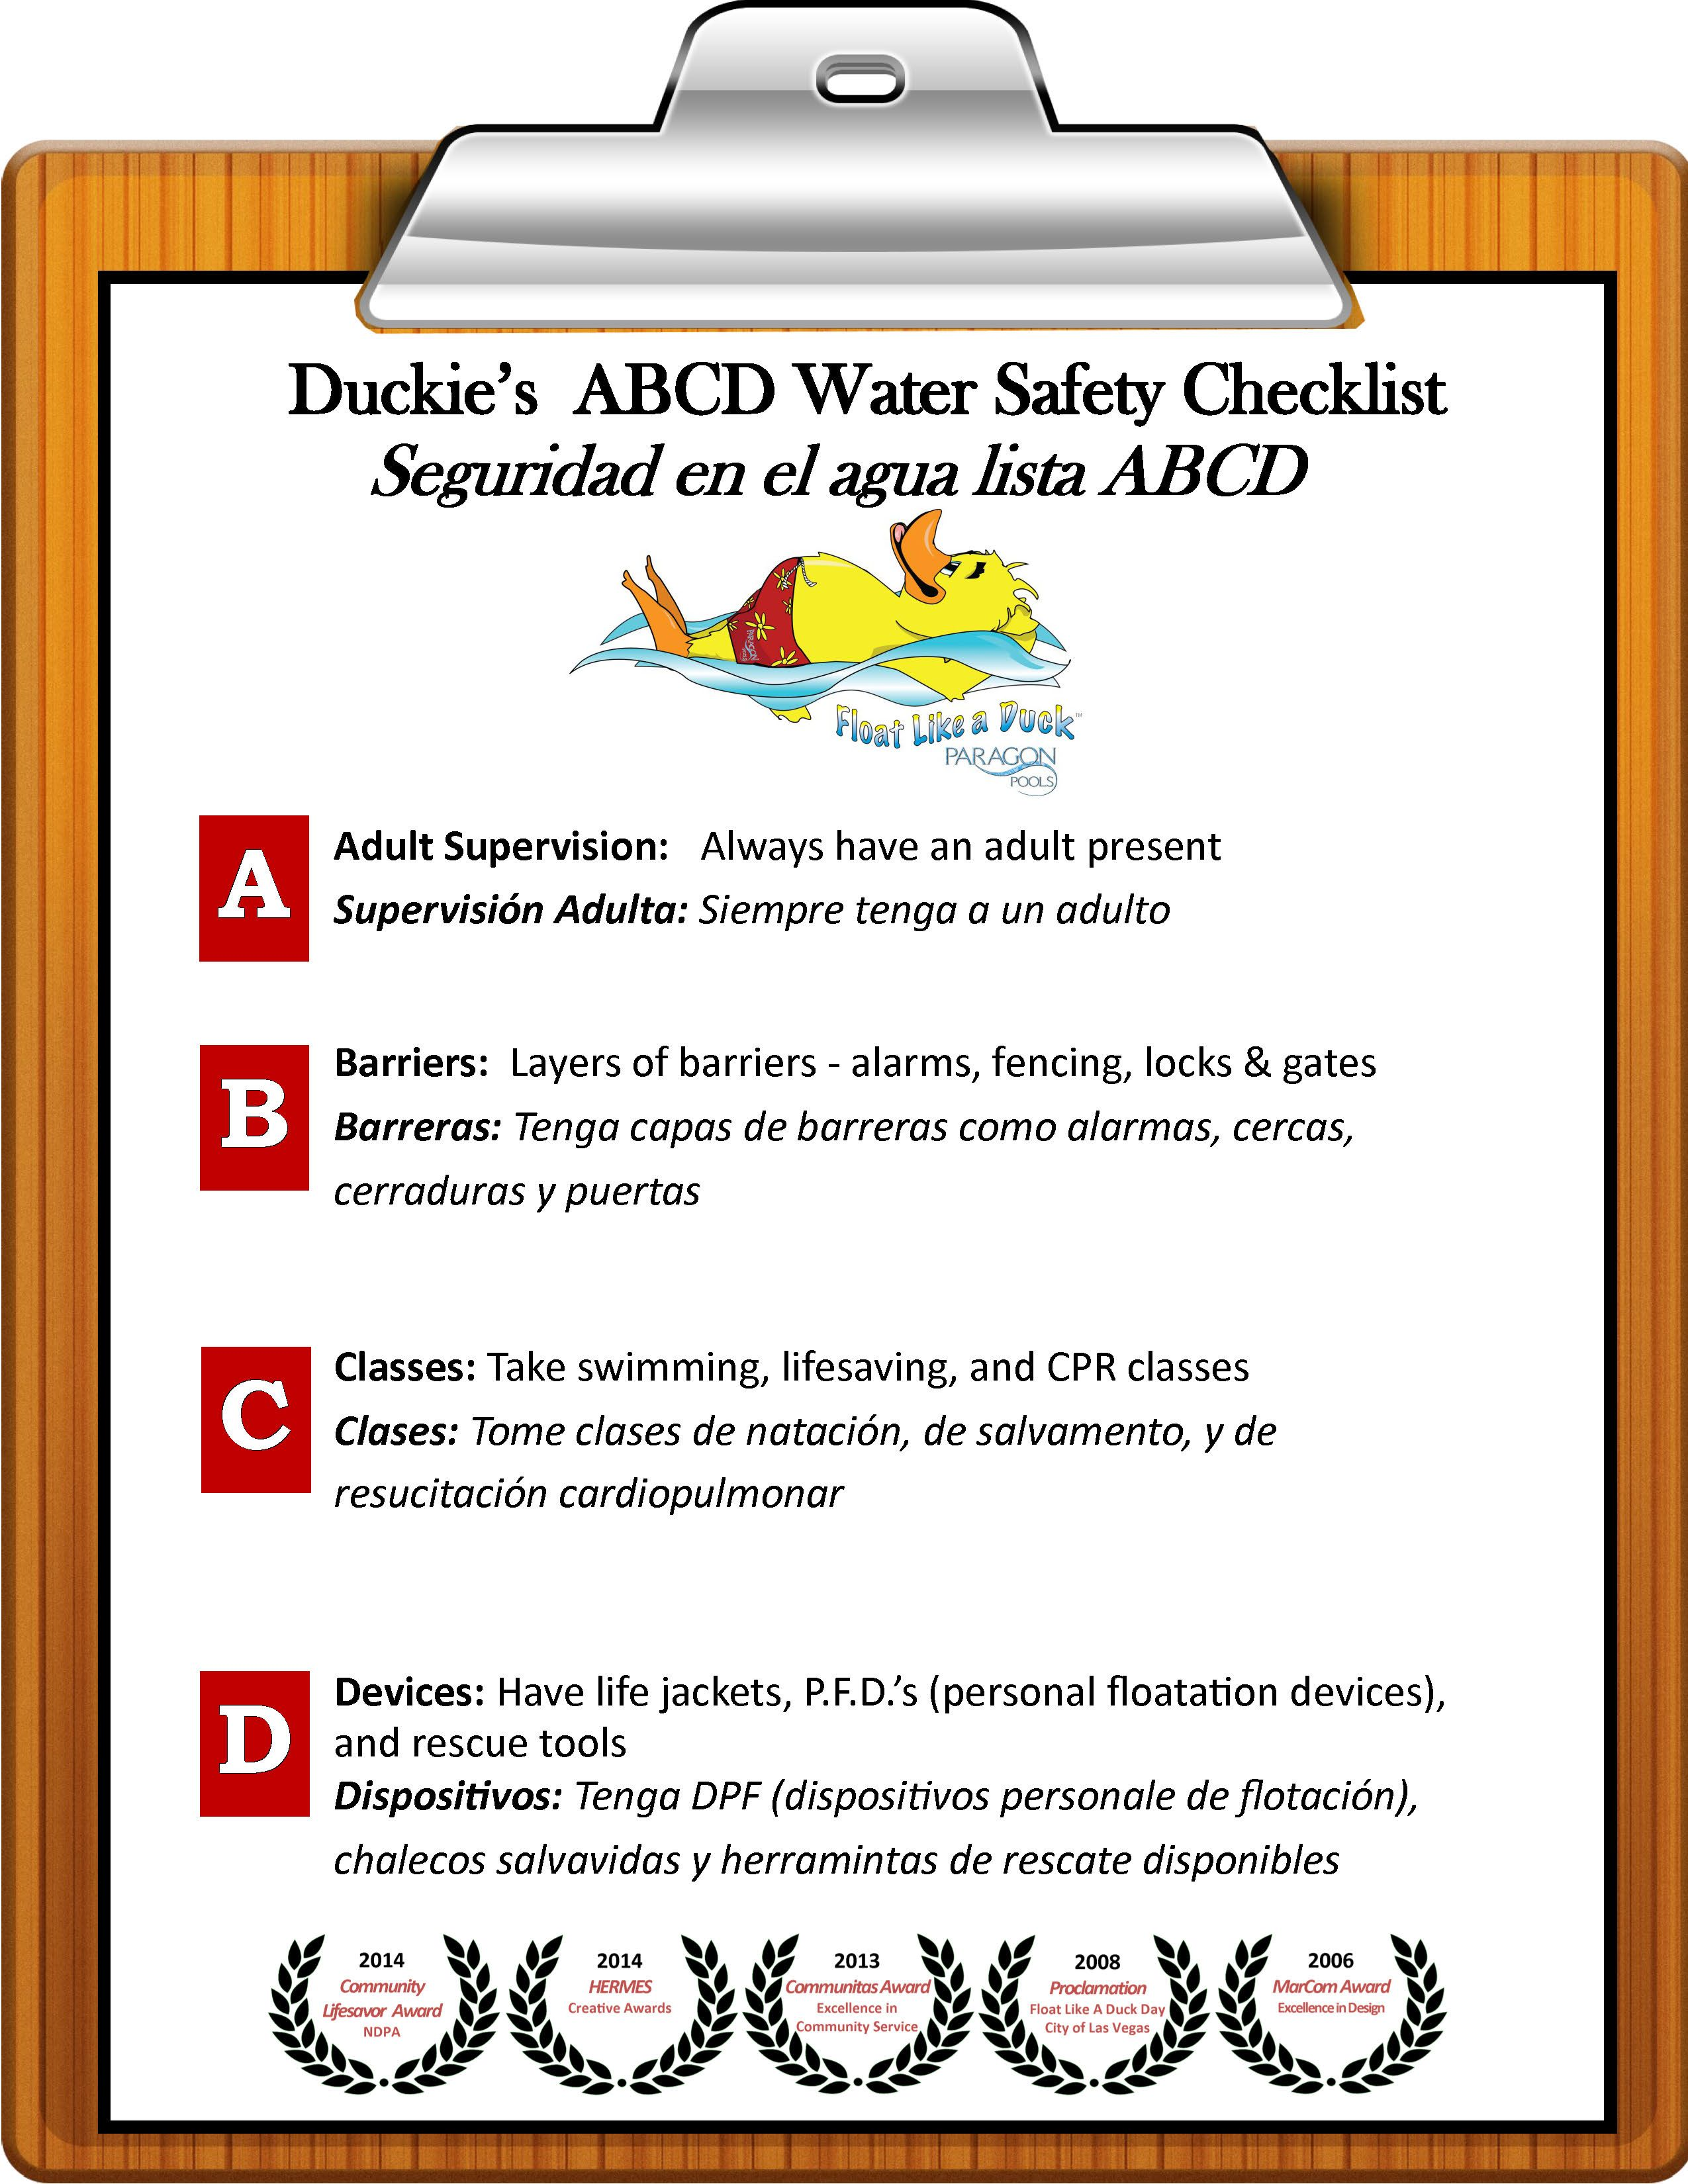 Pin By Paragon Pools On Duckie S Water Safety Tips Pool Safety Pool Builders Water Safety [ 3300 x 2550 Pixel ]